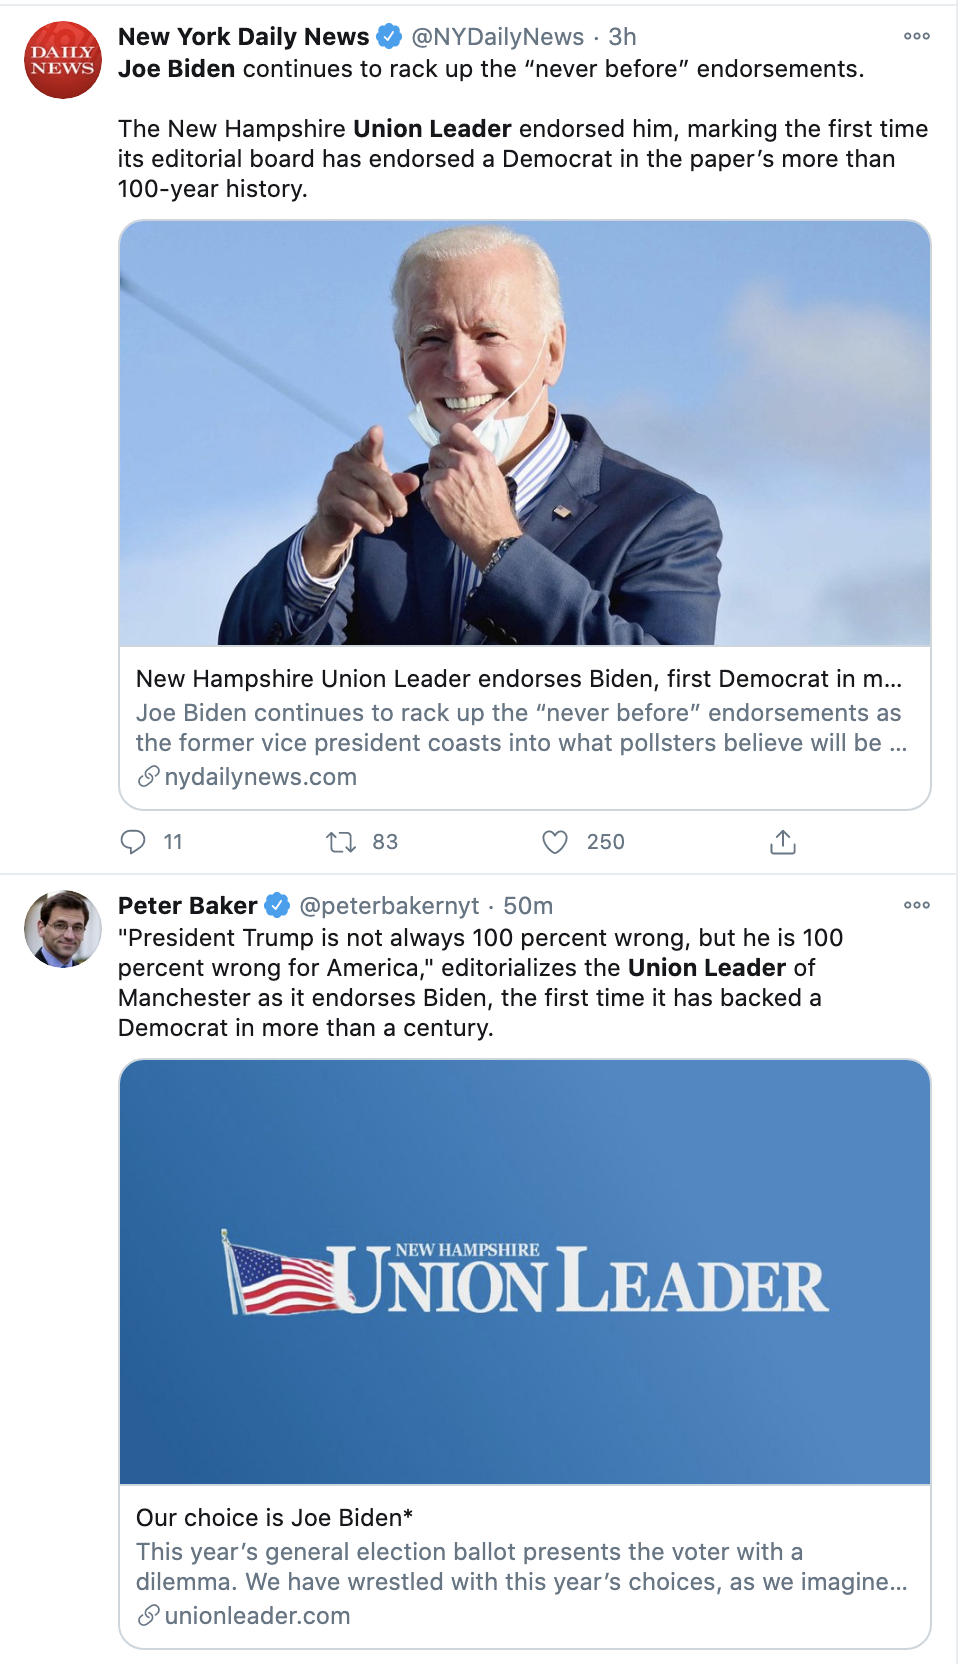 Screen-Shot-2020-10-25-at-2.09.18-PM Newspaper Endorses 1st Democrat In 100 Years With Trump Snub Corruption Election 2020 Featured Politics Top Stories